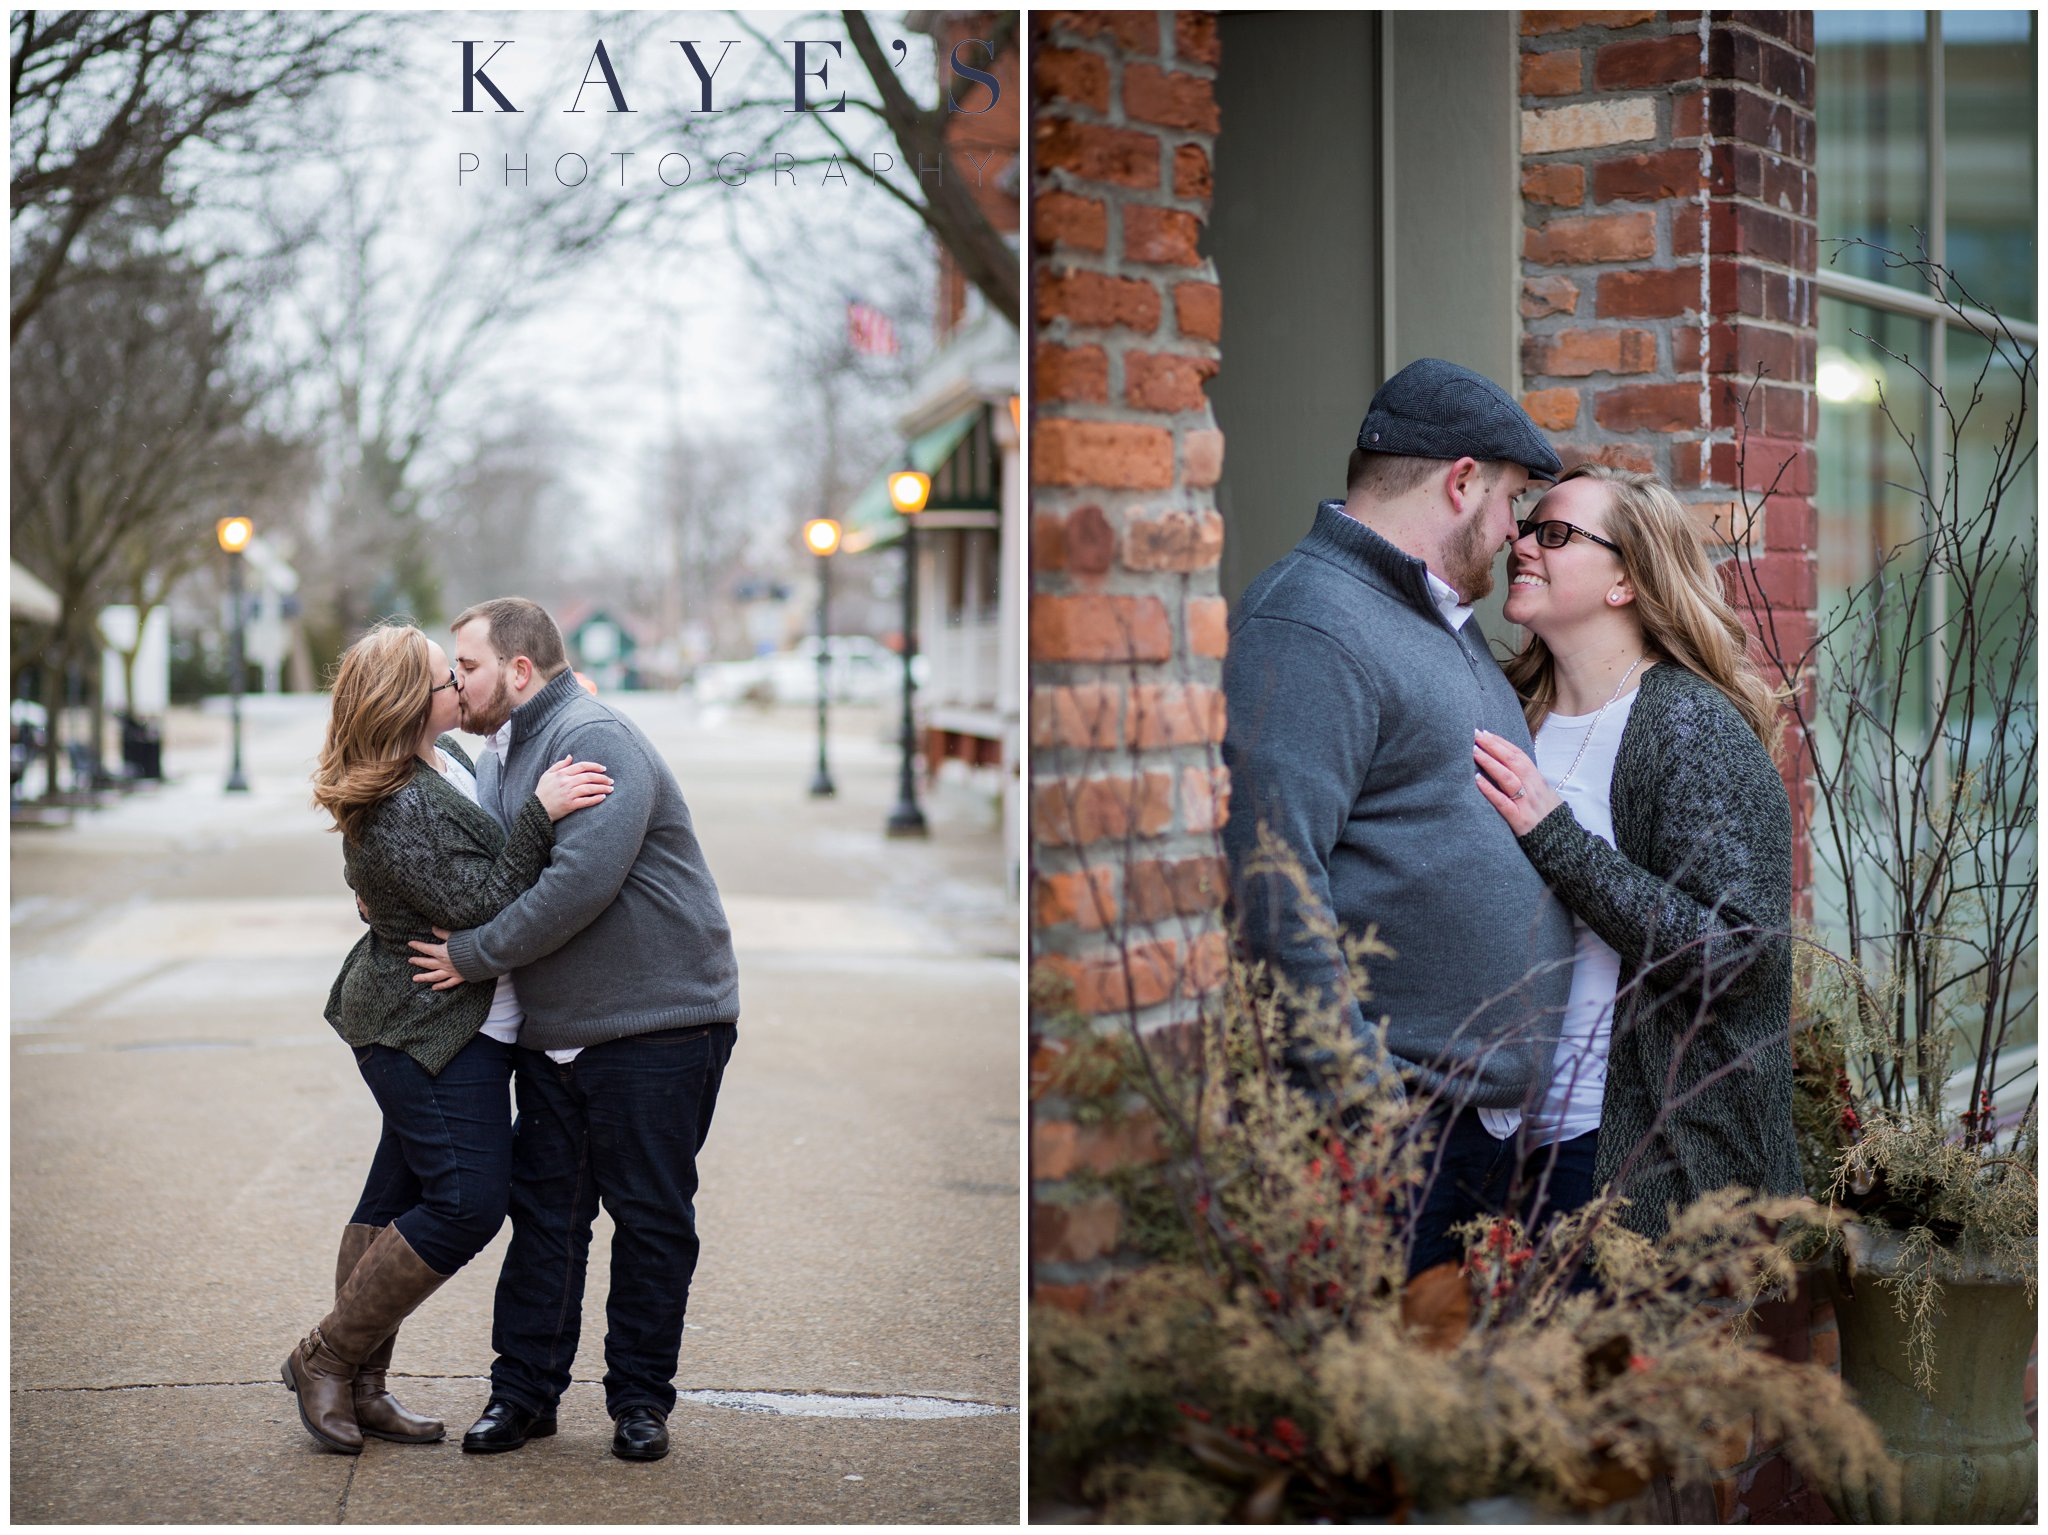 Grand blanc, Michigan engagement photography session with couple in the city hugging and kissing during their engagement photos